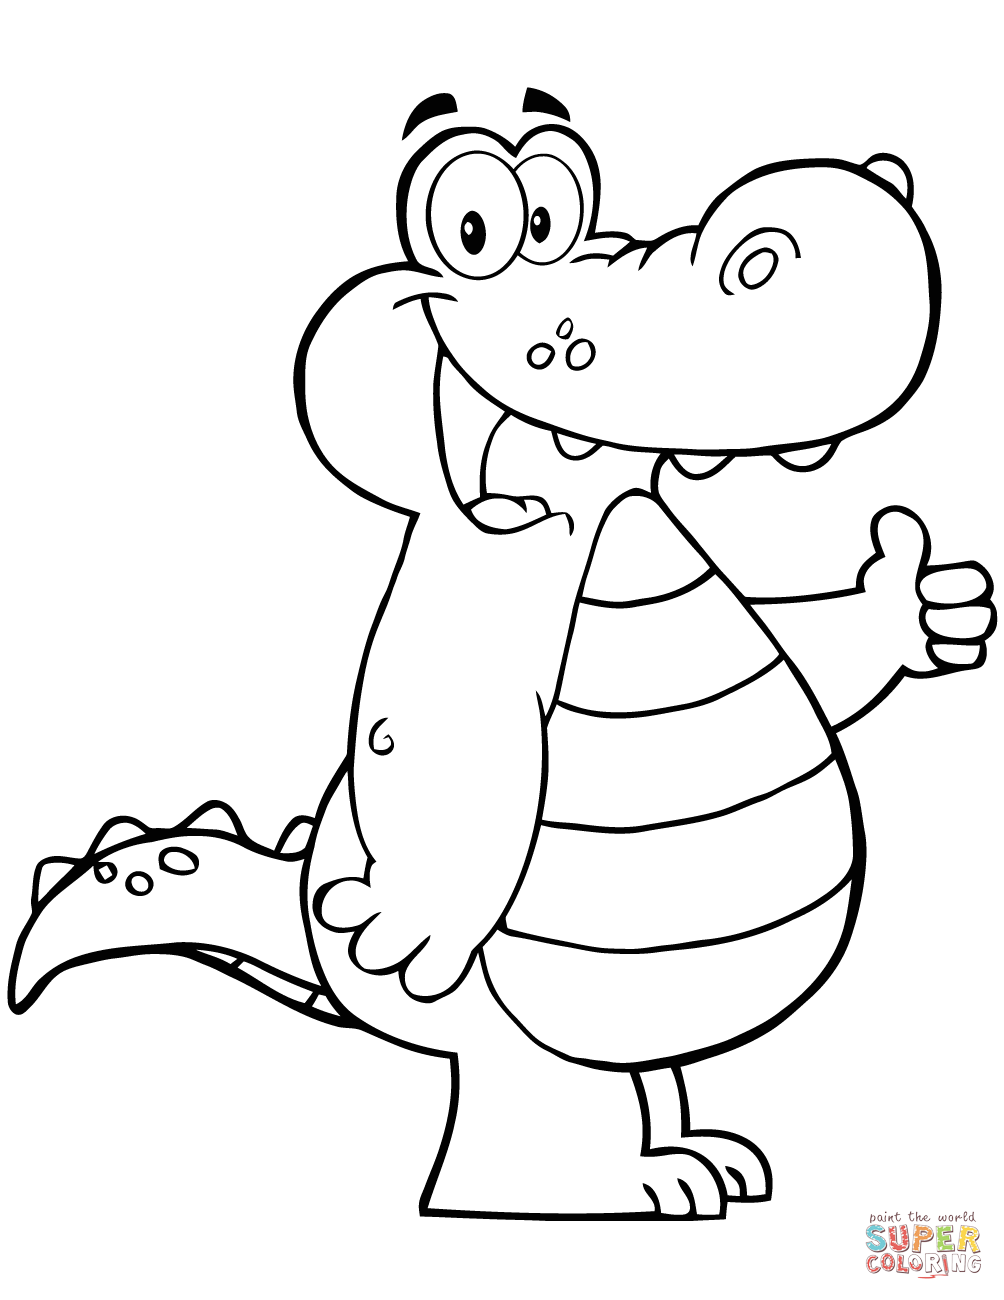 alligator coloring sheets robin39s great coloring pages american alligator and coloring sheets alligator